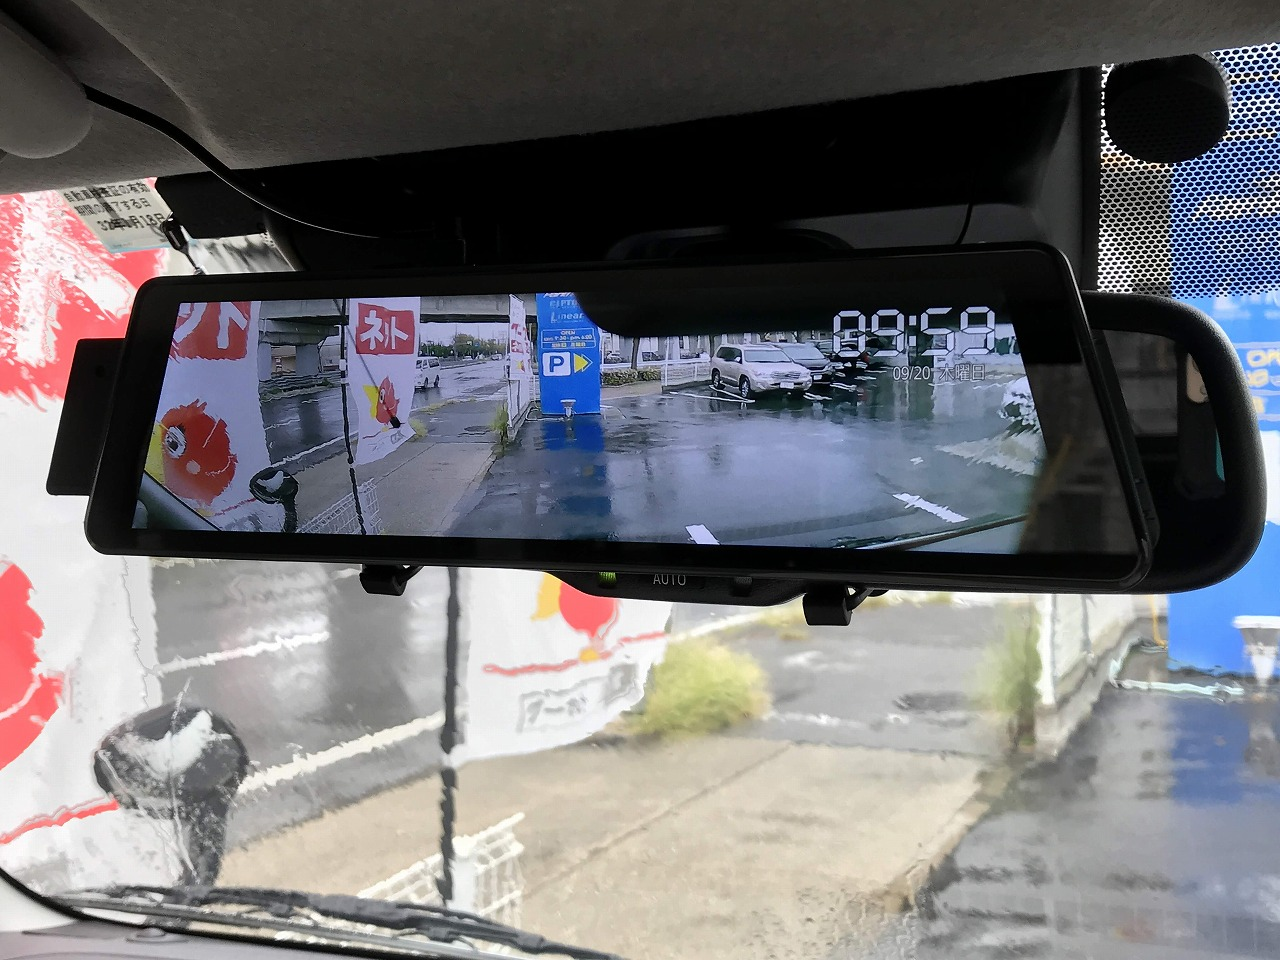 Japan hilux vehicle installed with smart streaming media with rearview mirror monitor and DVR dash camera